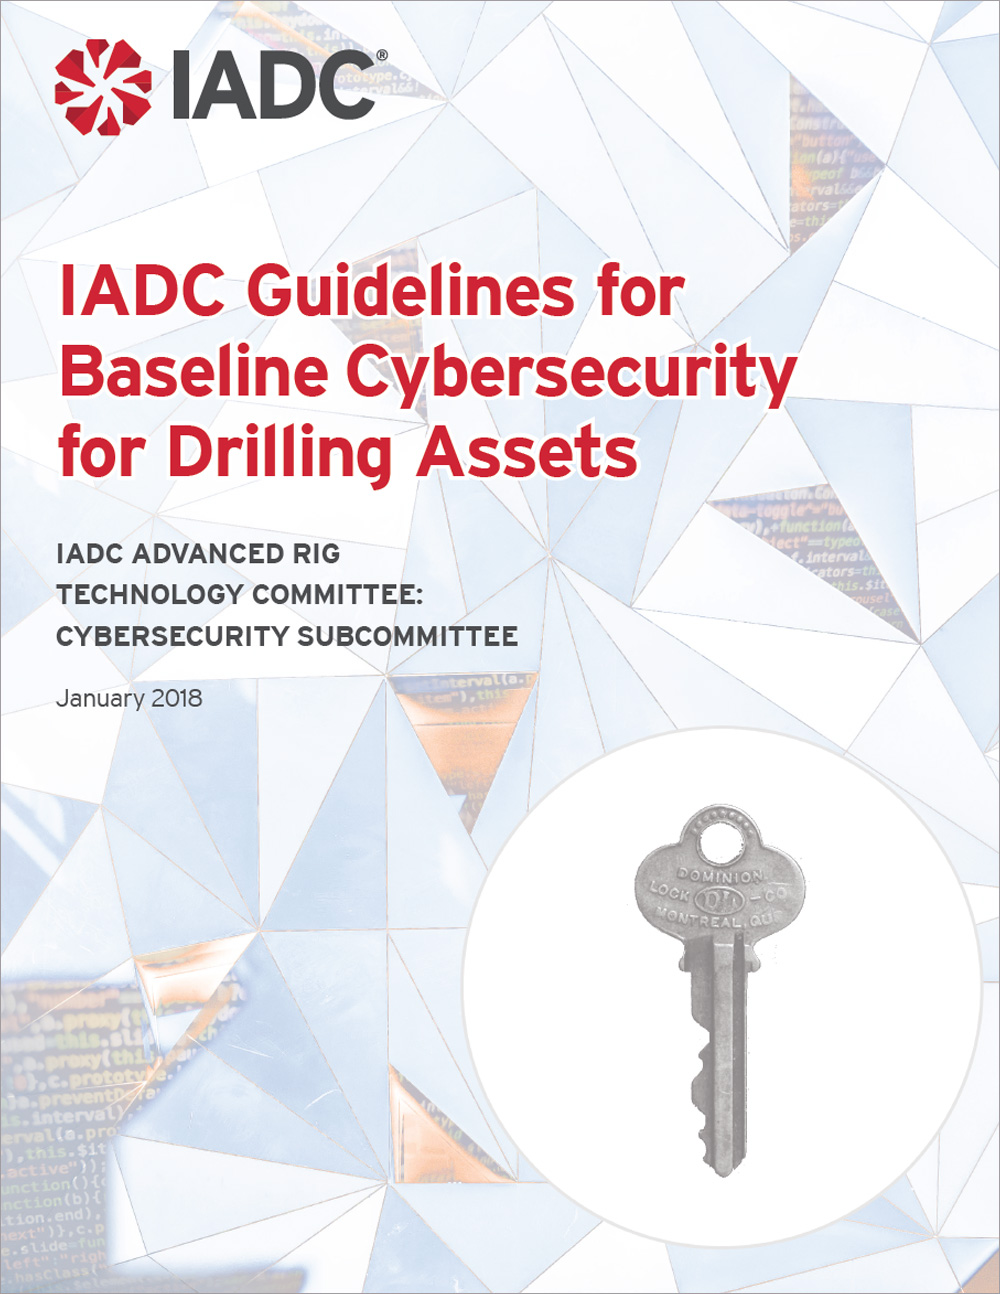 IADC Guidelines for Baseline Cybersecurity for Drilling Assets